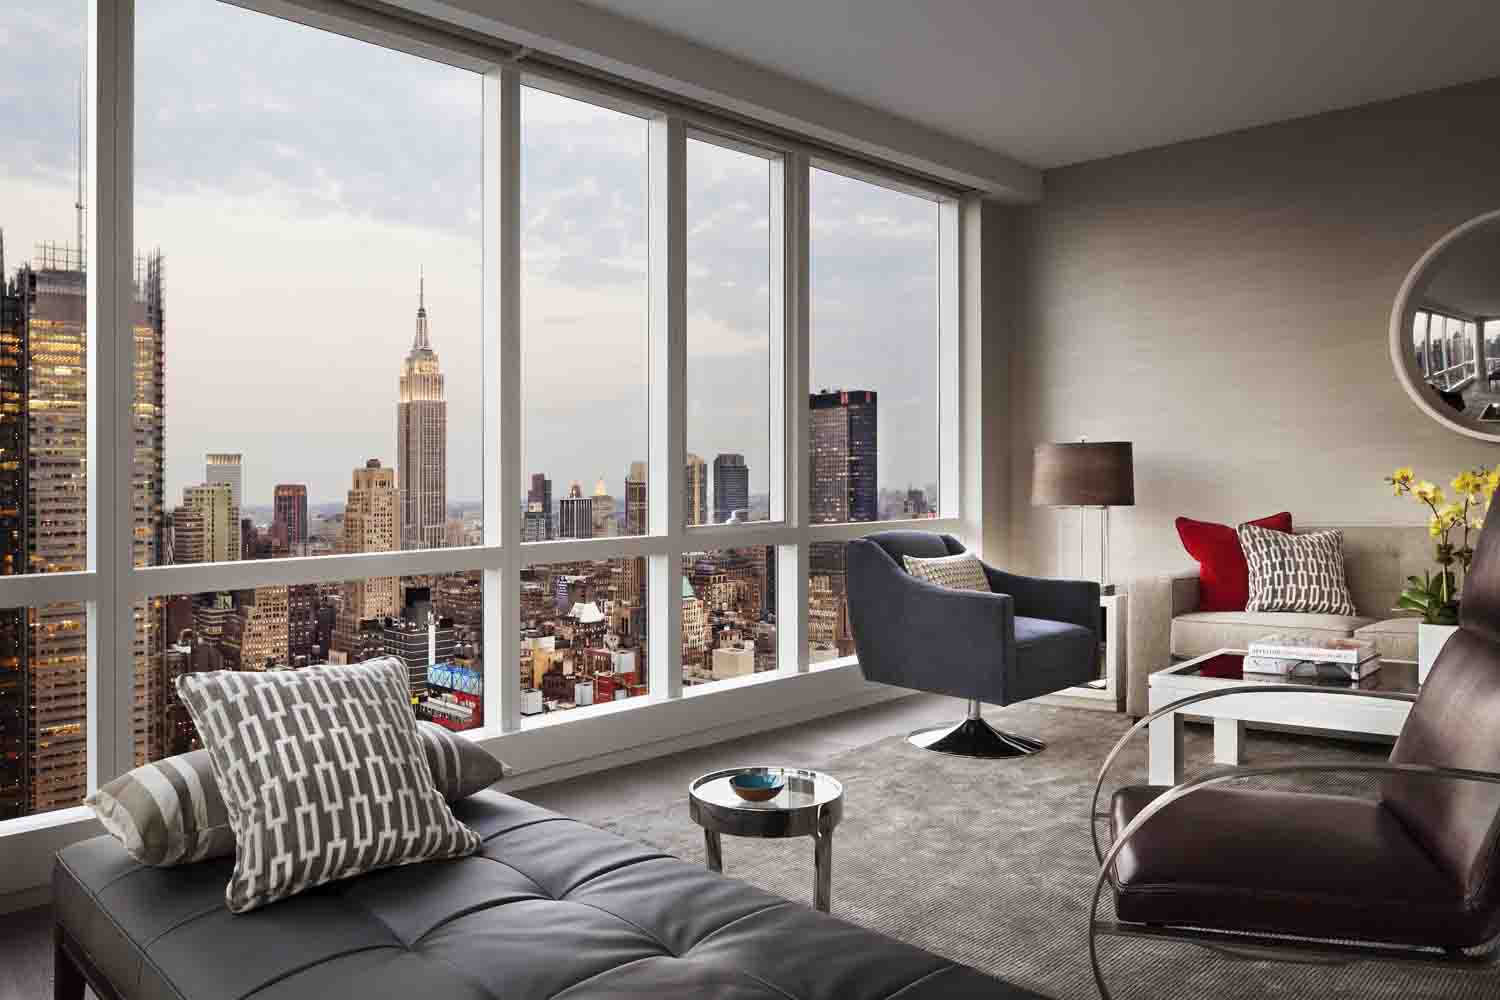 New York City Luxury Rental Blog Archives For July 2012 Luxury Rentals Manhattan